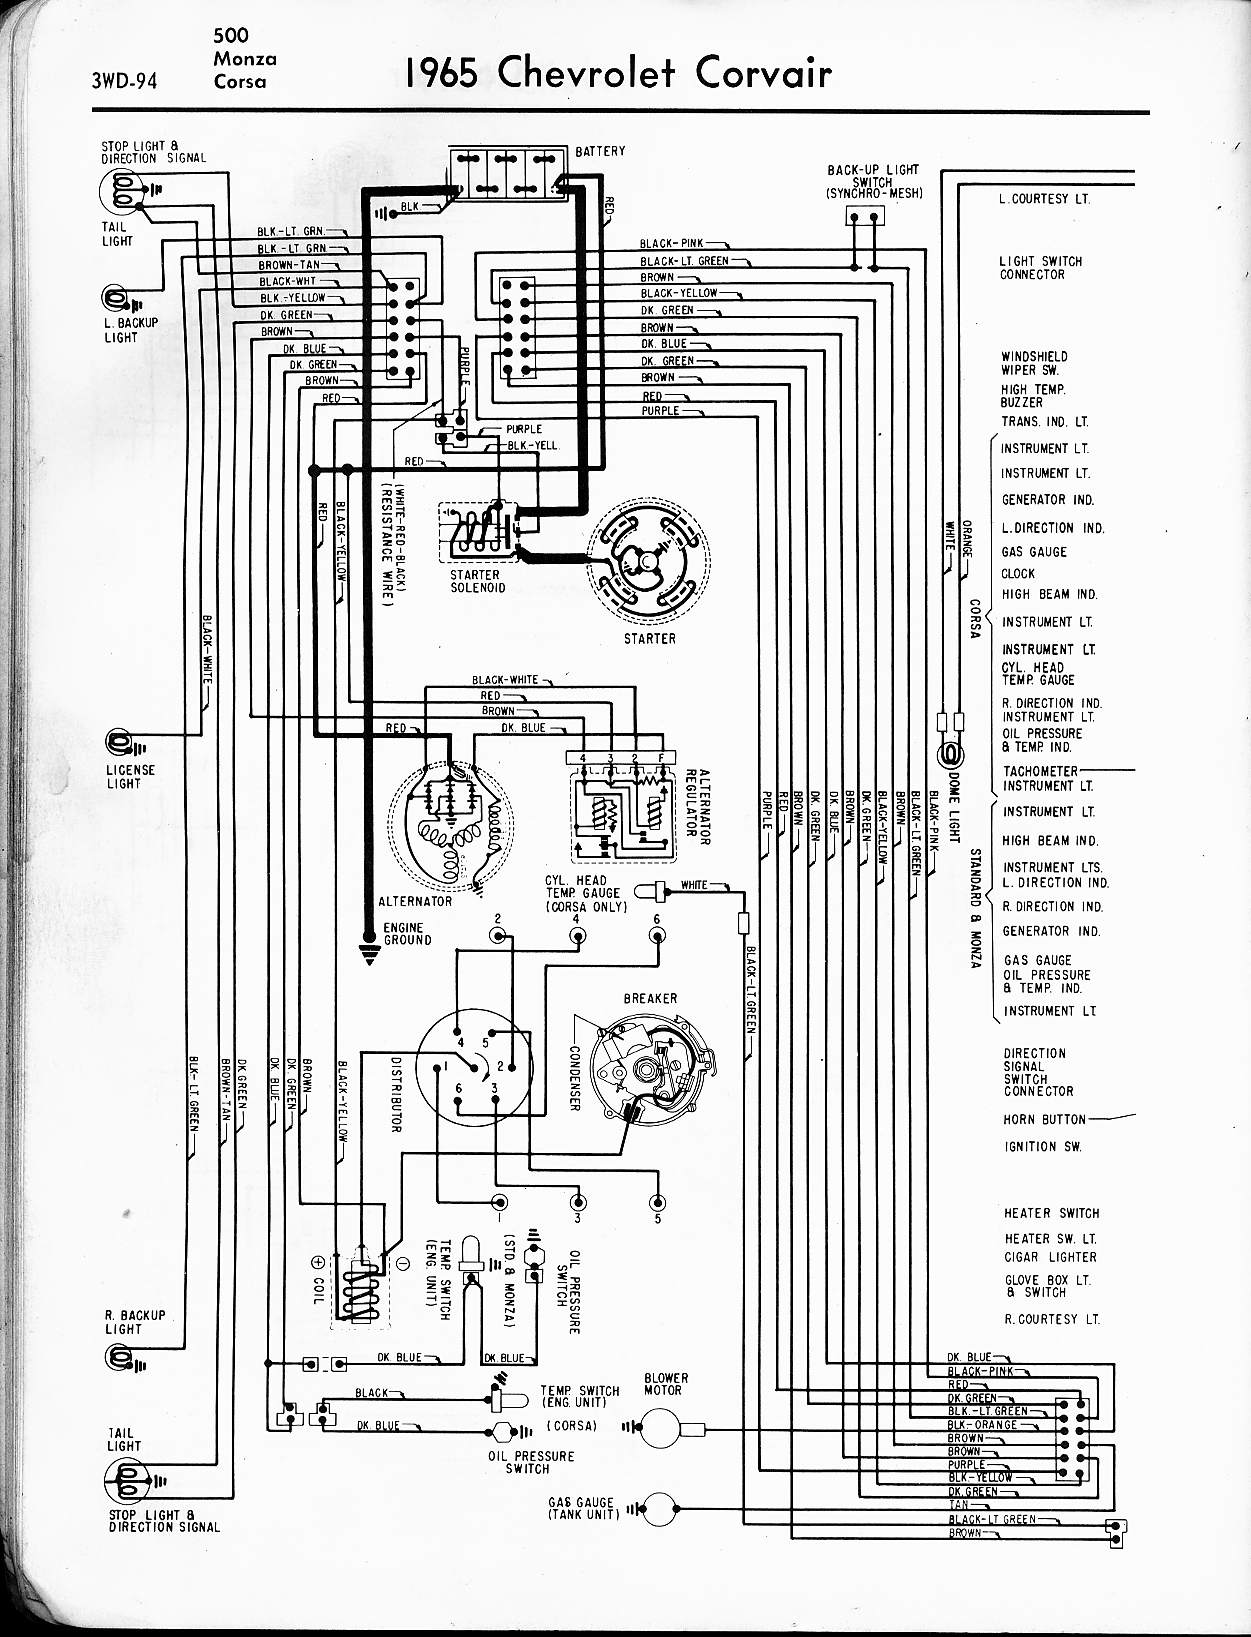 Well Vw Ignition Switch Wiring Diagram On 66 Chevelle Starter Wiring  Chevelle Starter Wiring Diagram on 1966 chevelle wiring schematic, 1970 chevelle starter wiring diagram, 2010 camaro starter wiring diagram, 1964 chevelle starter wiring diagram, 1969 chevelle starter wiring diagram, 1971 chevelle starter wiring diagram, 1972 chevelle starter wiring diagram, 1967 chevelle starter wiring diagram, 1965 chevelle starter wiring diagram, 1972 camaro starter wiring diagram,